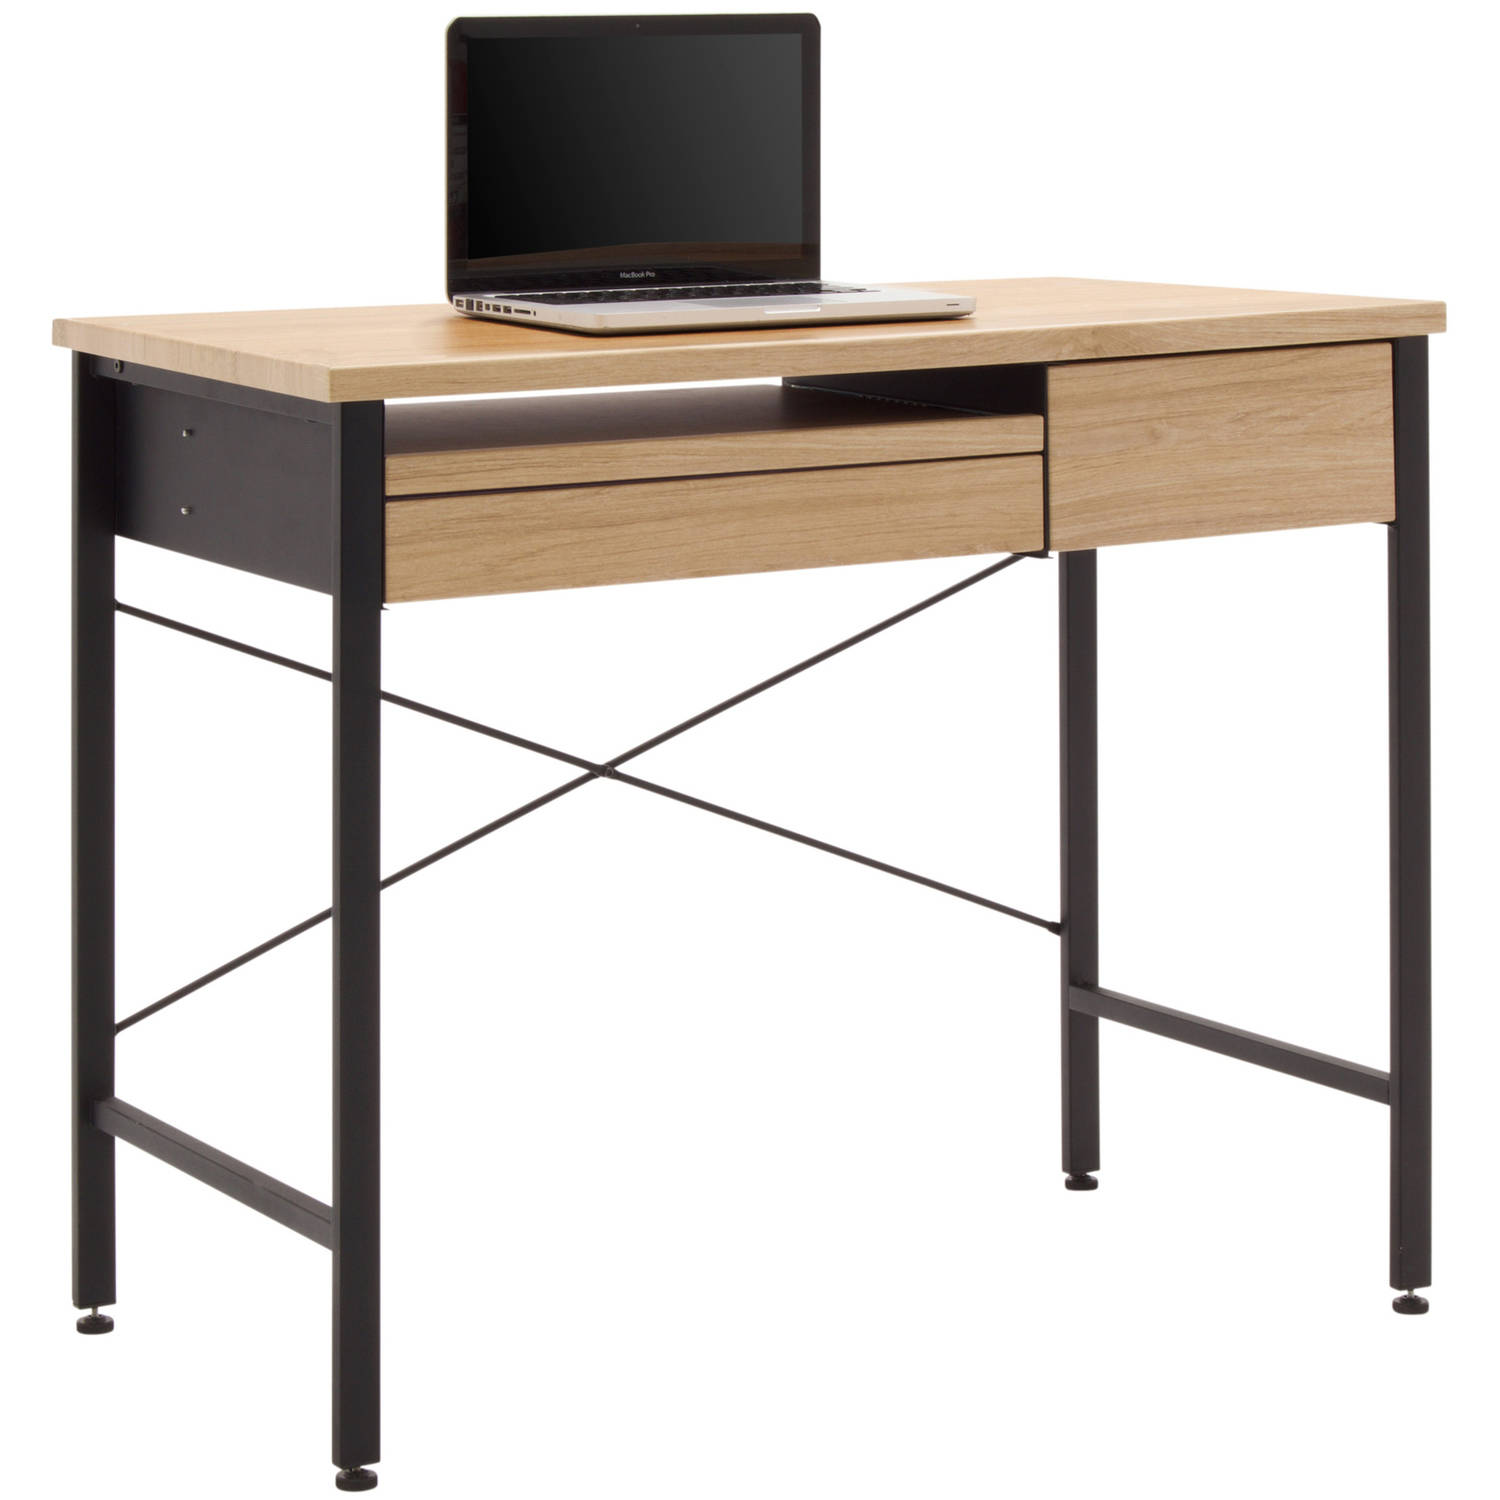 Calico Designs Ashwood Compact Desk, Ashwood/Graphite